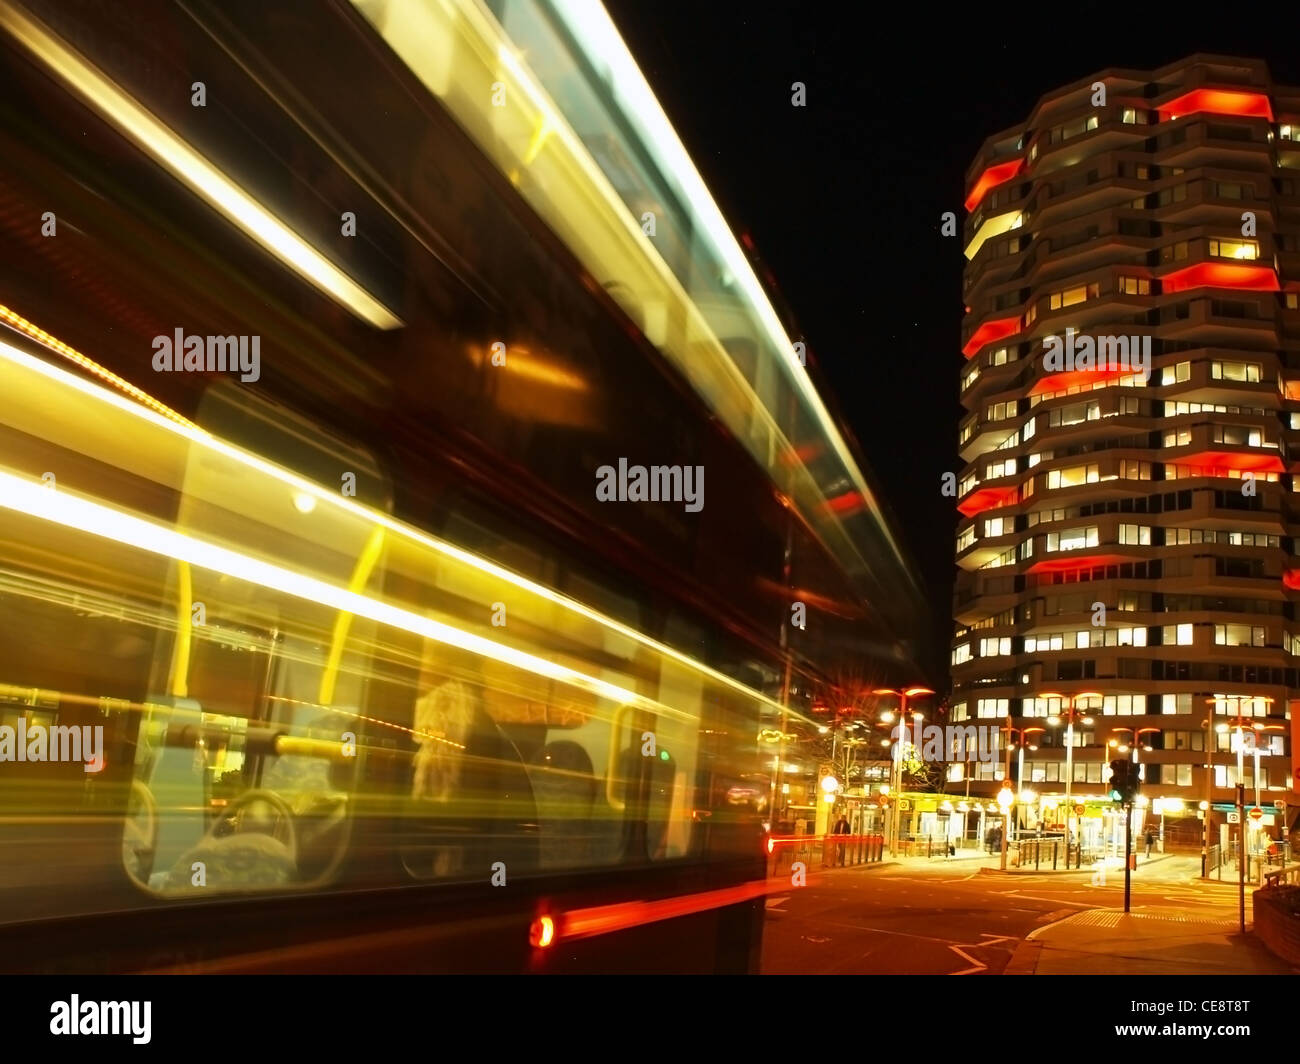 A bus passes, leaving light trails in its wake. In the background is the illuminated officeblock of Croydon No.1 - Stock Image